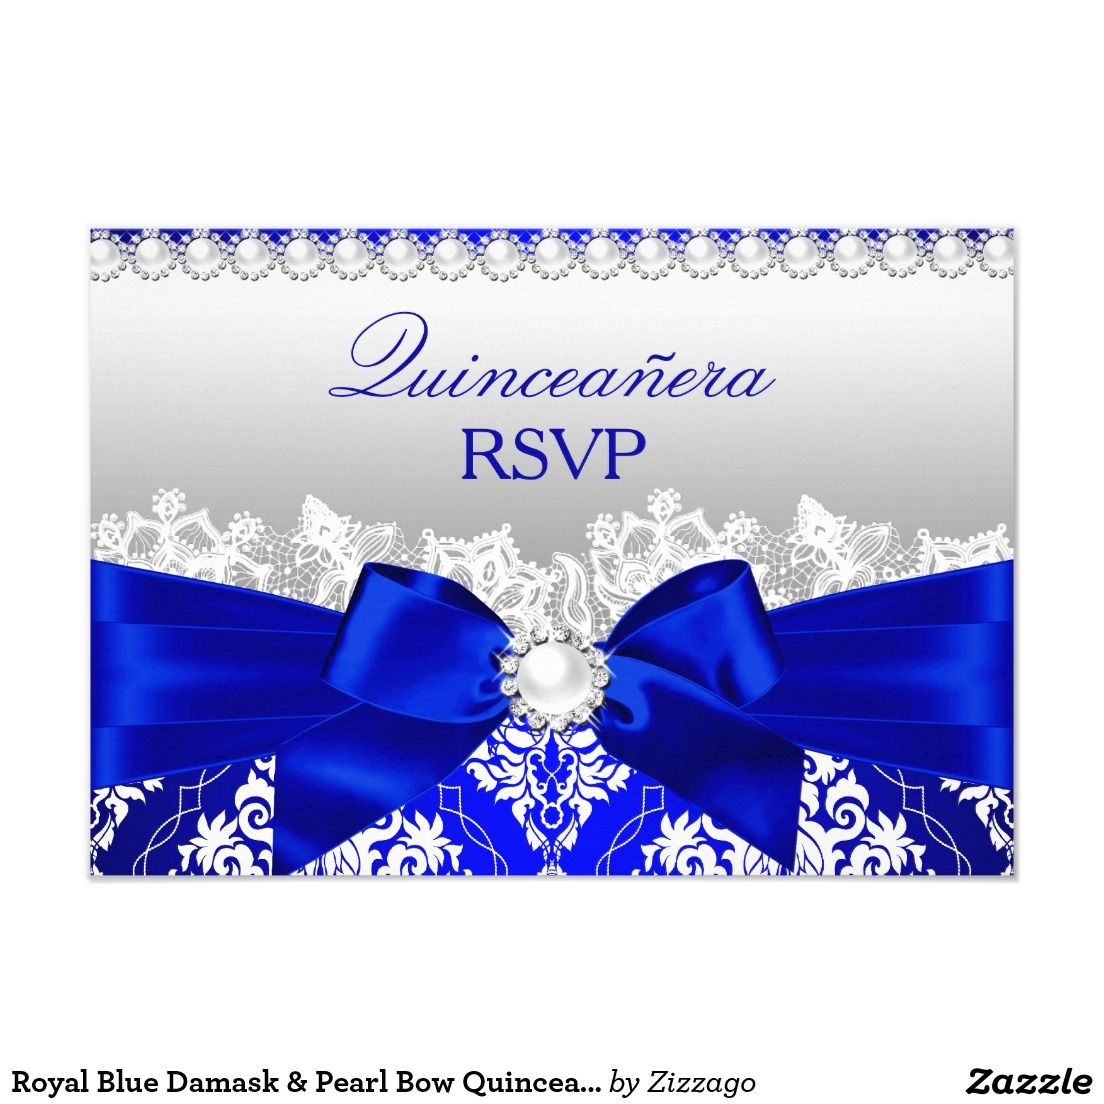 Royal Blue Damask Pearl Bow Quinceanera RSVP Invitation